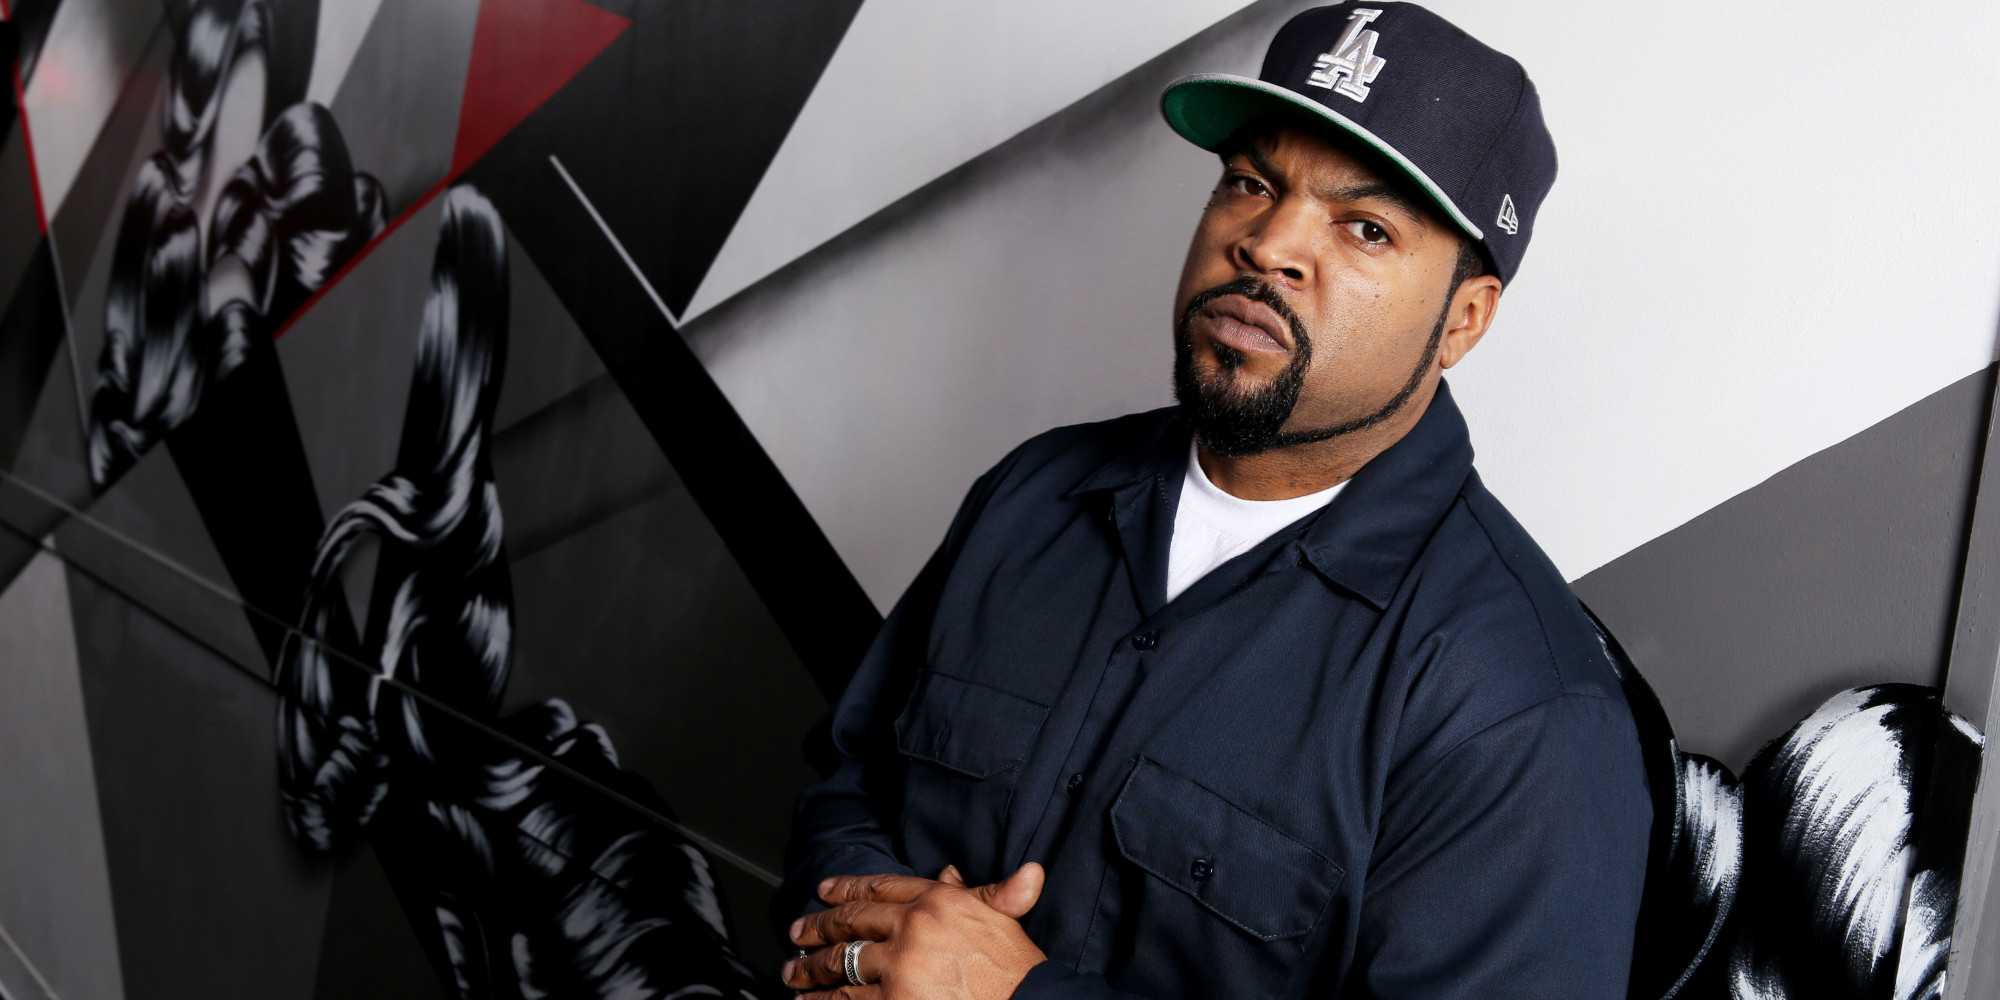 ice cube college Before joining nwa and setting off his career in hip hop, ice cube constructed a safety net as an architectural drafting student in a clip for pacific standard.